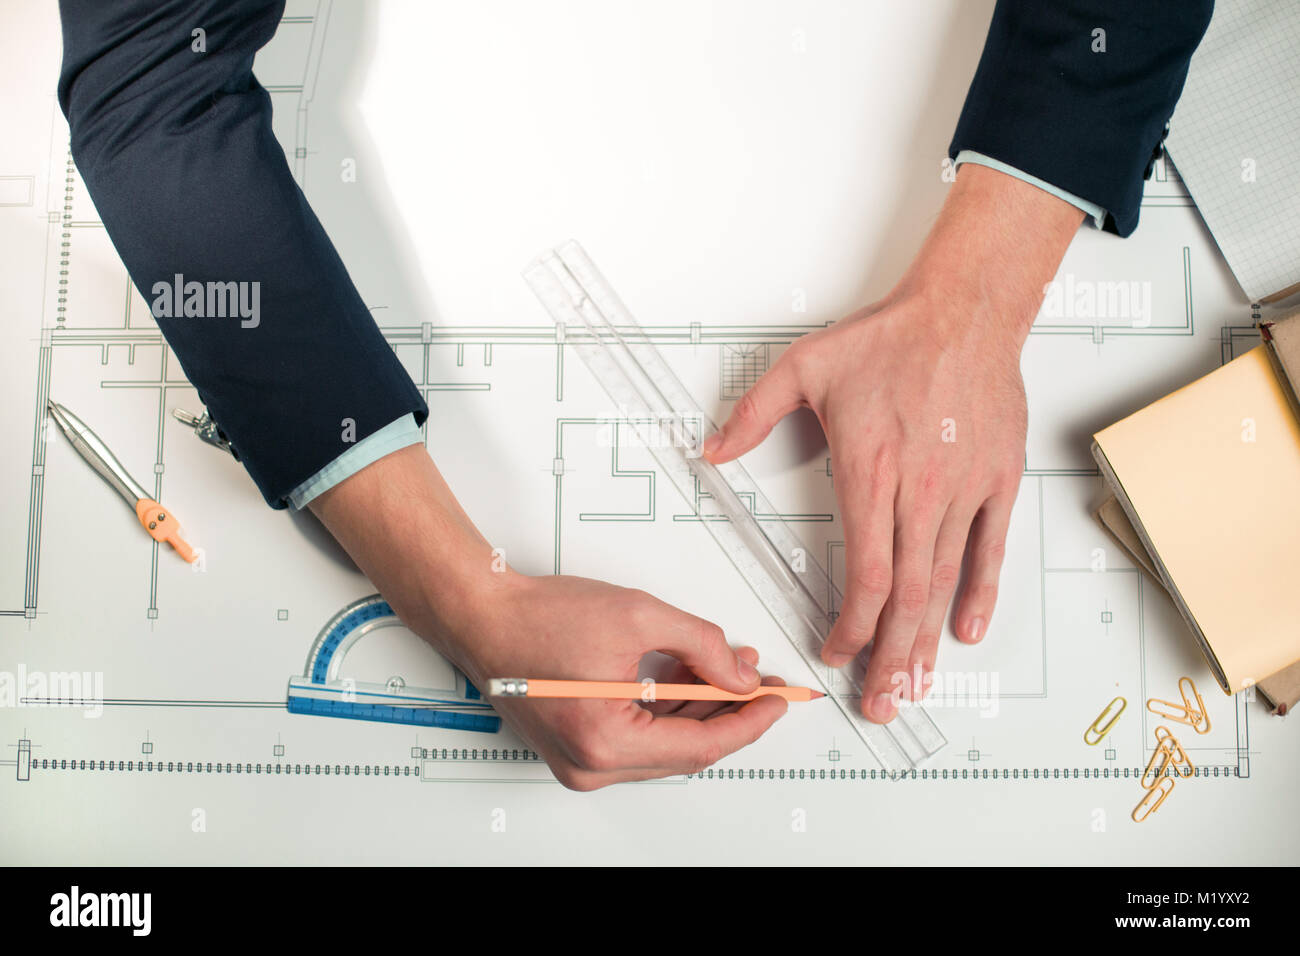 Young male hands sketching blueprint - Stock Image